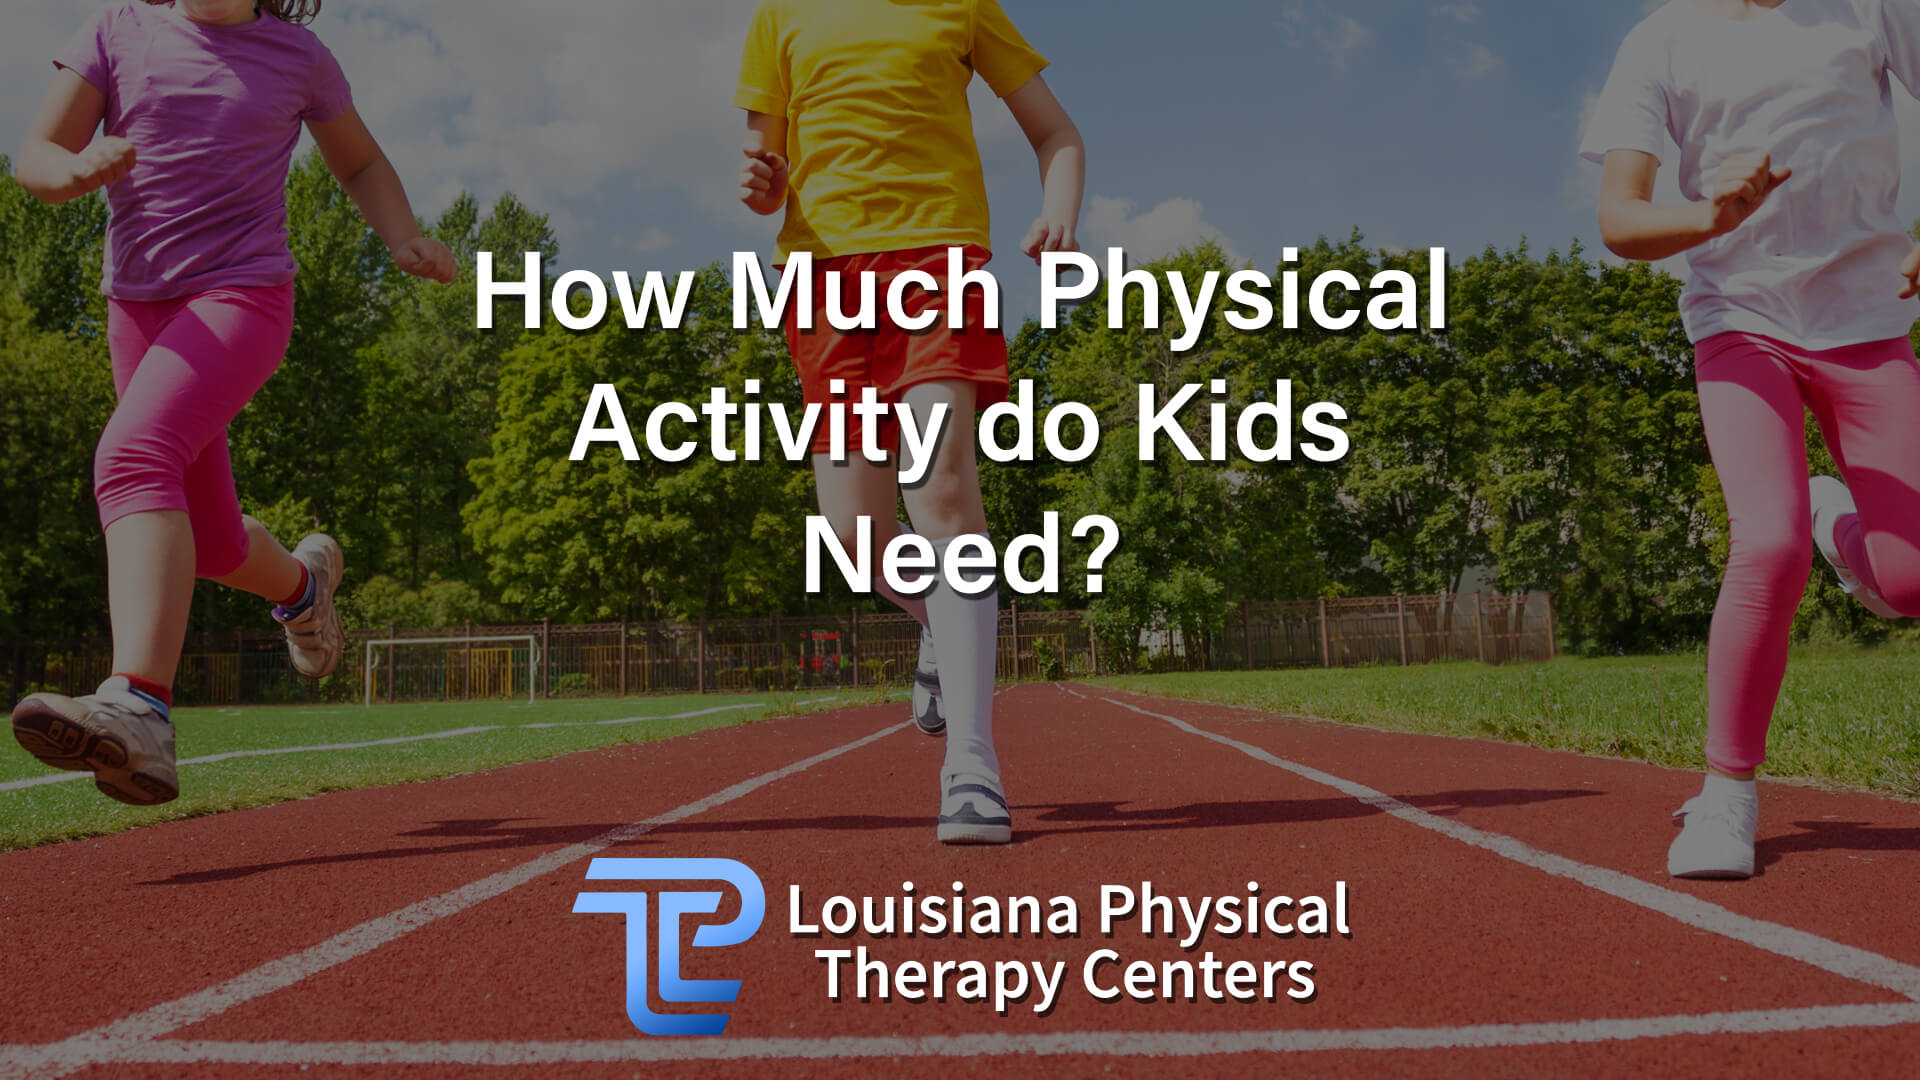 How Much Physical Activity do Kids Need